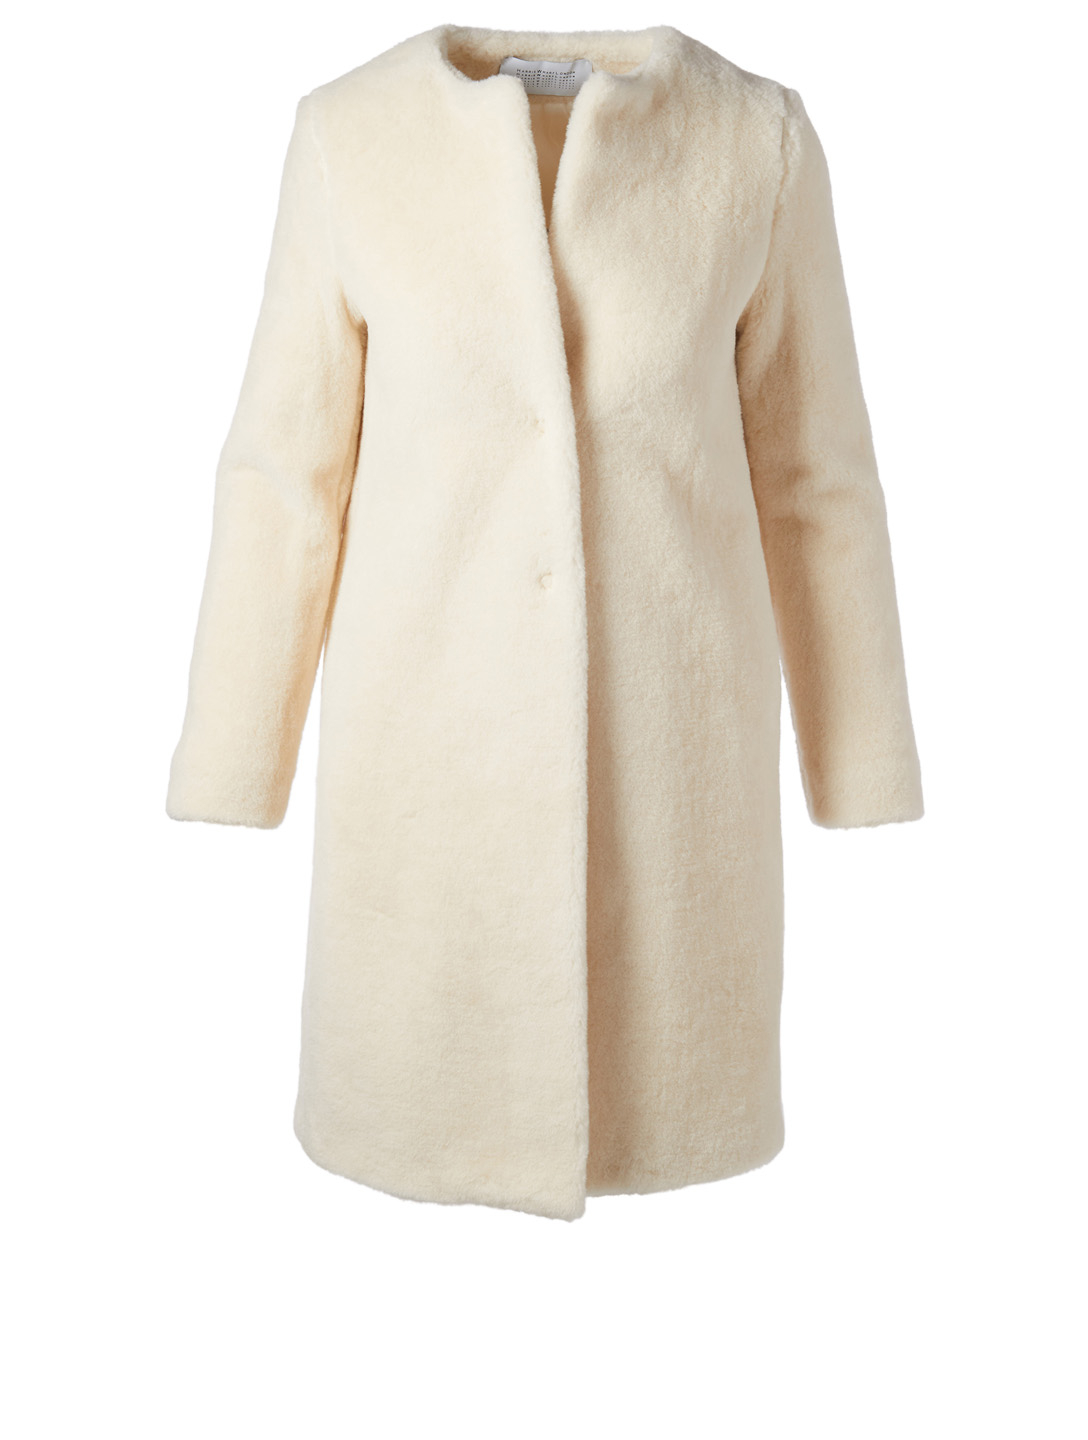 HARRIS WHARF LONDON Alpaca Blend Teddy Coat Women's White